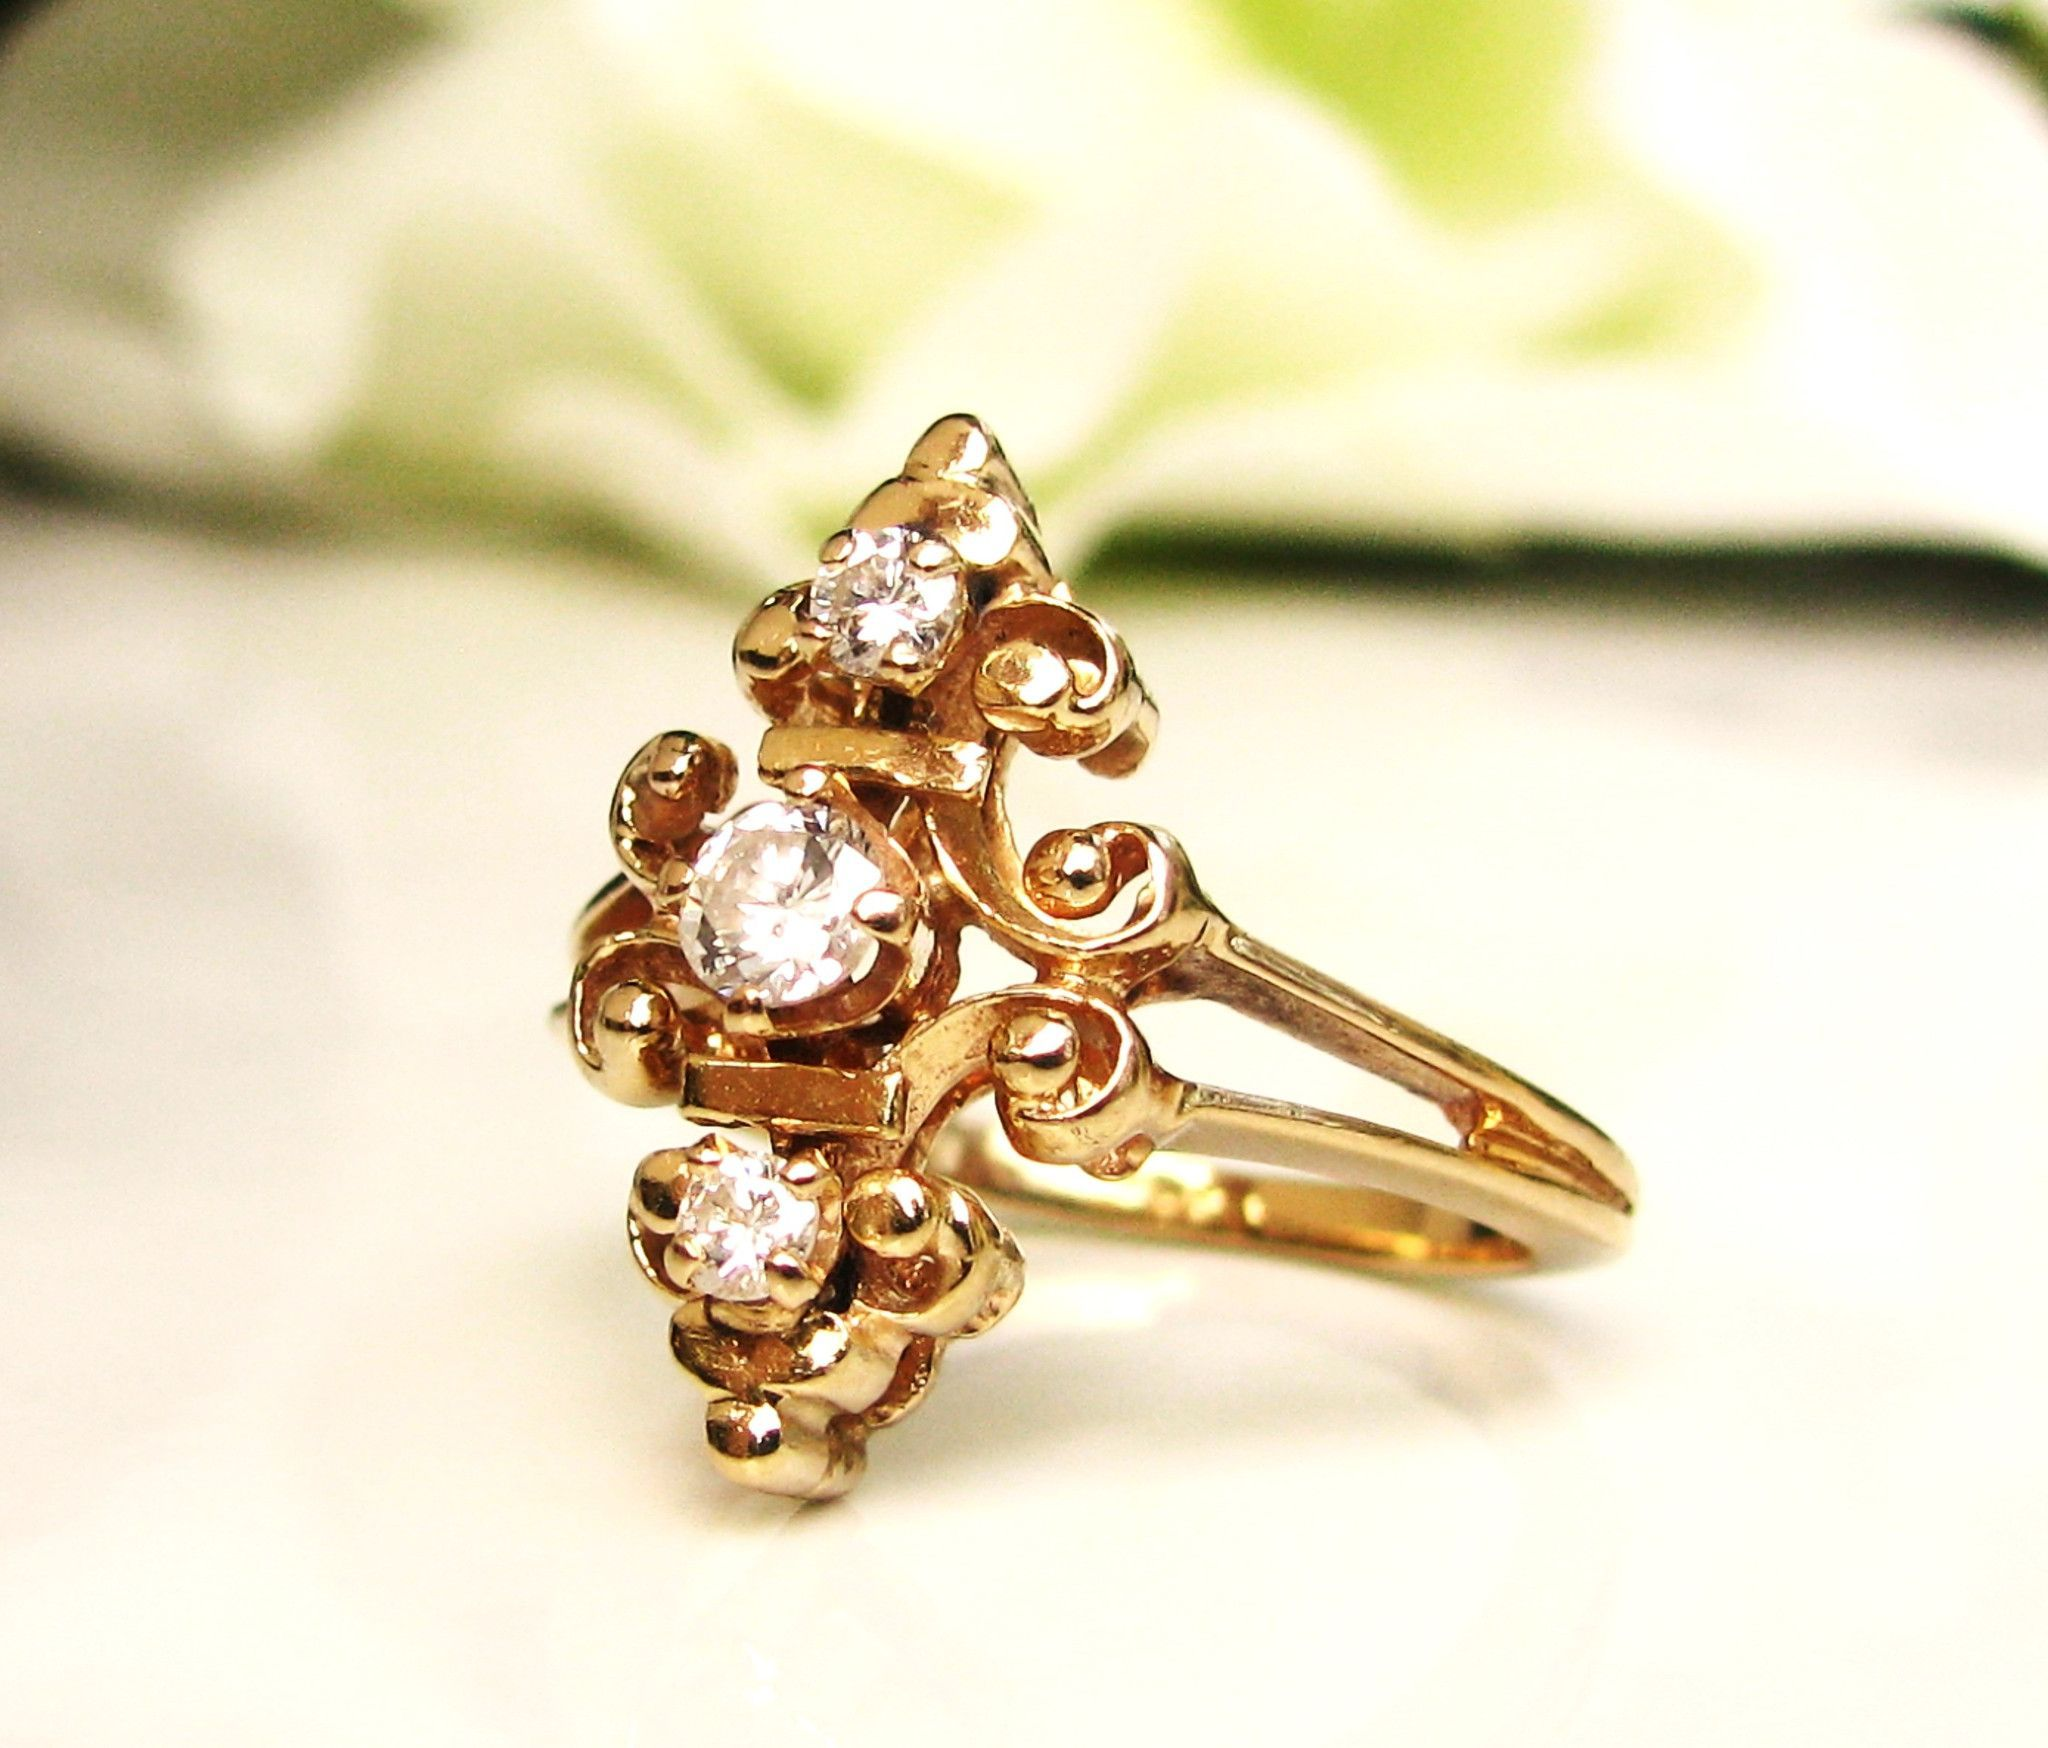 inspired renaissance rings amazing for silver engagement vintage design intended style dress wedding popular